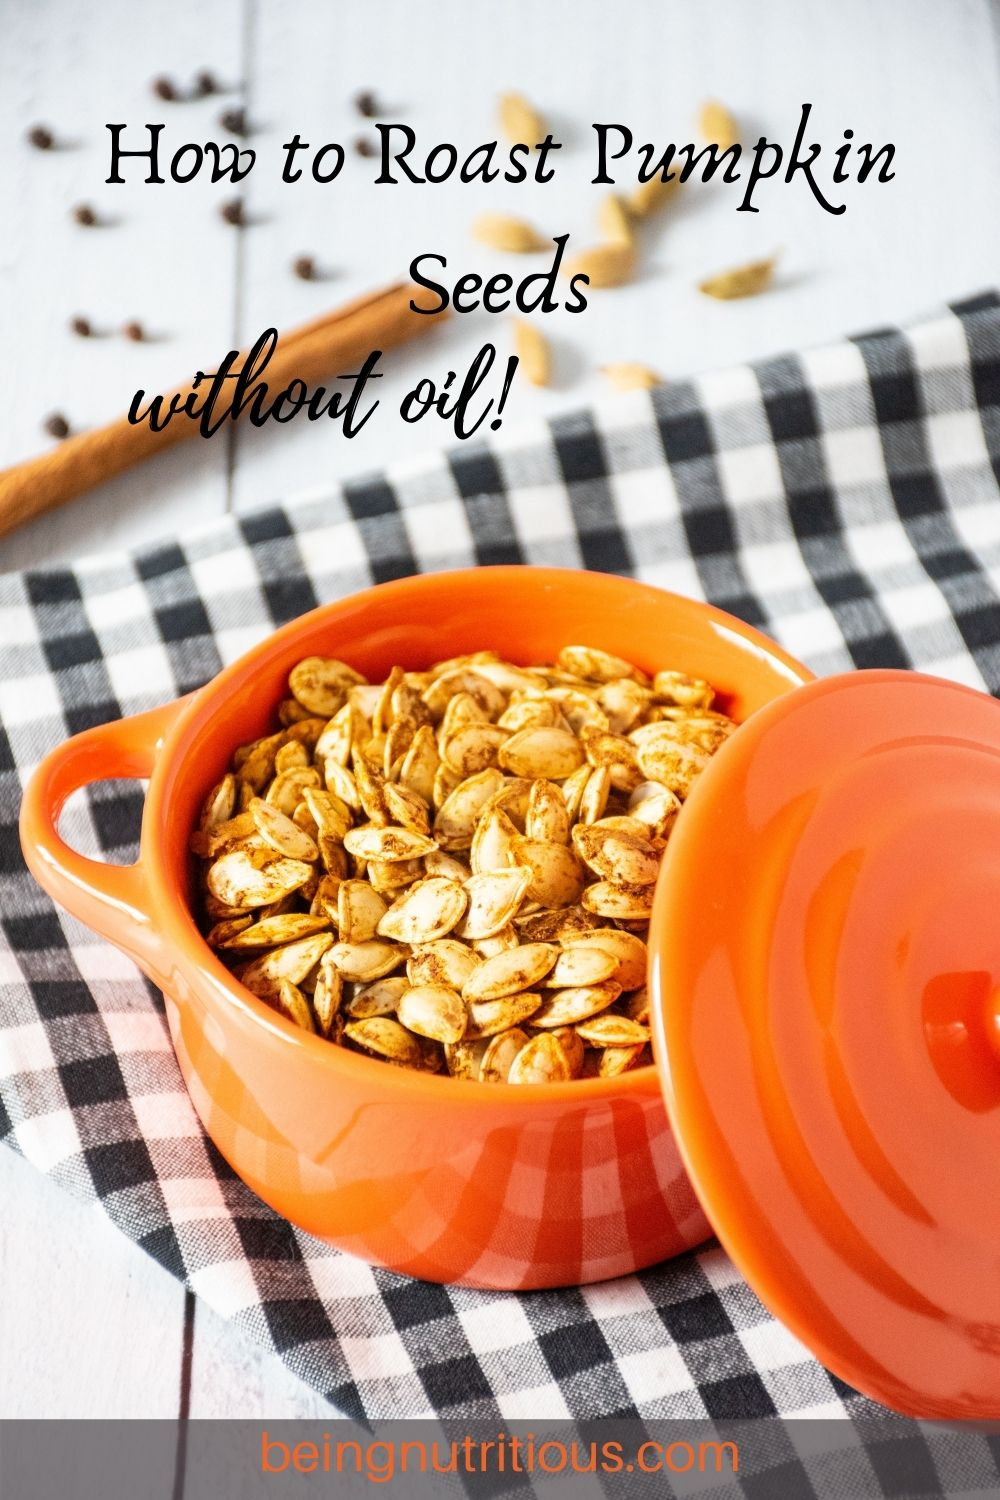 Small pot filled with roasted pumpkin seeds. Text overlay: How to roast pumpkin seeds without oil